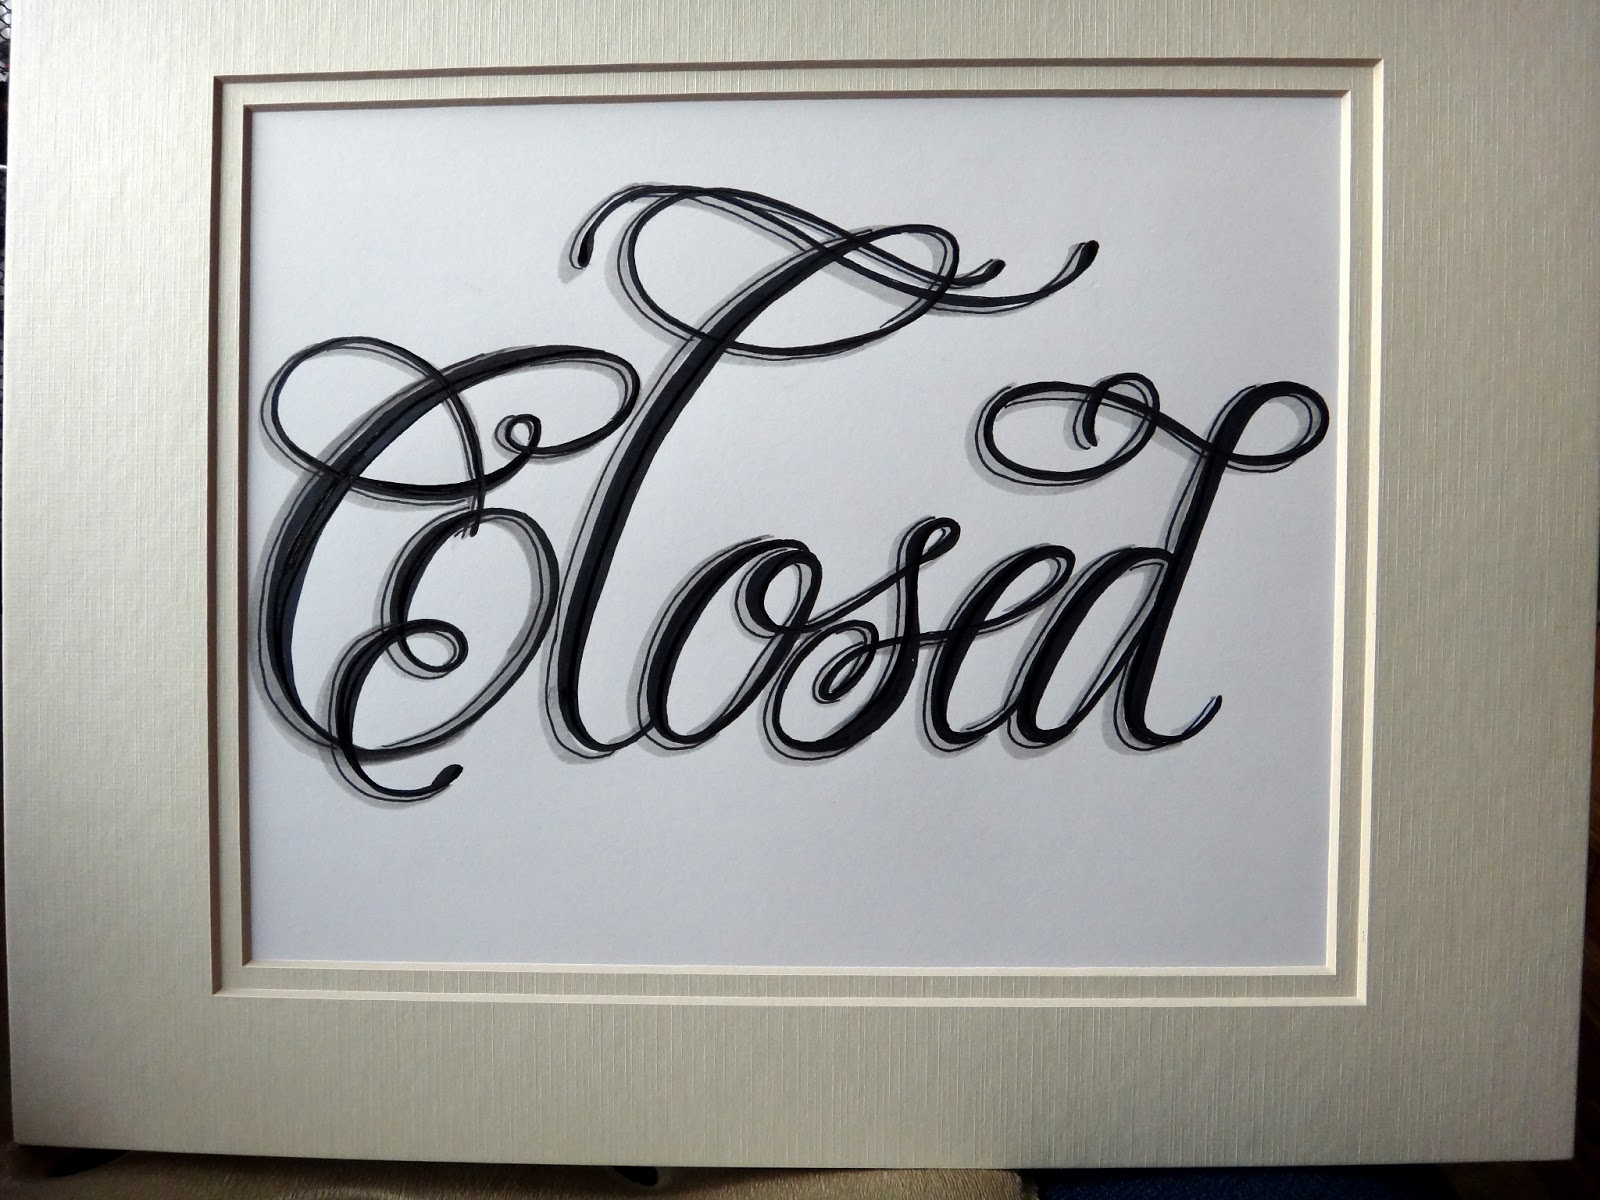 CLOSED sign text word (12)